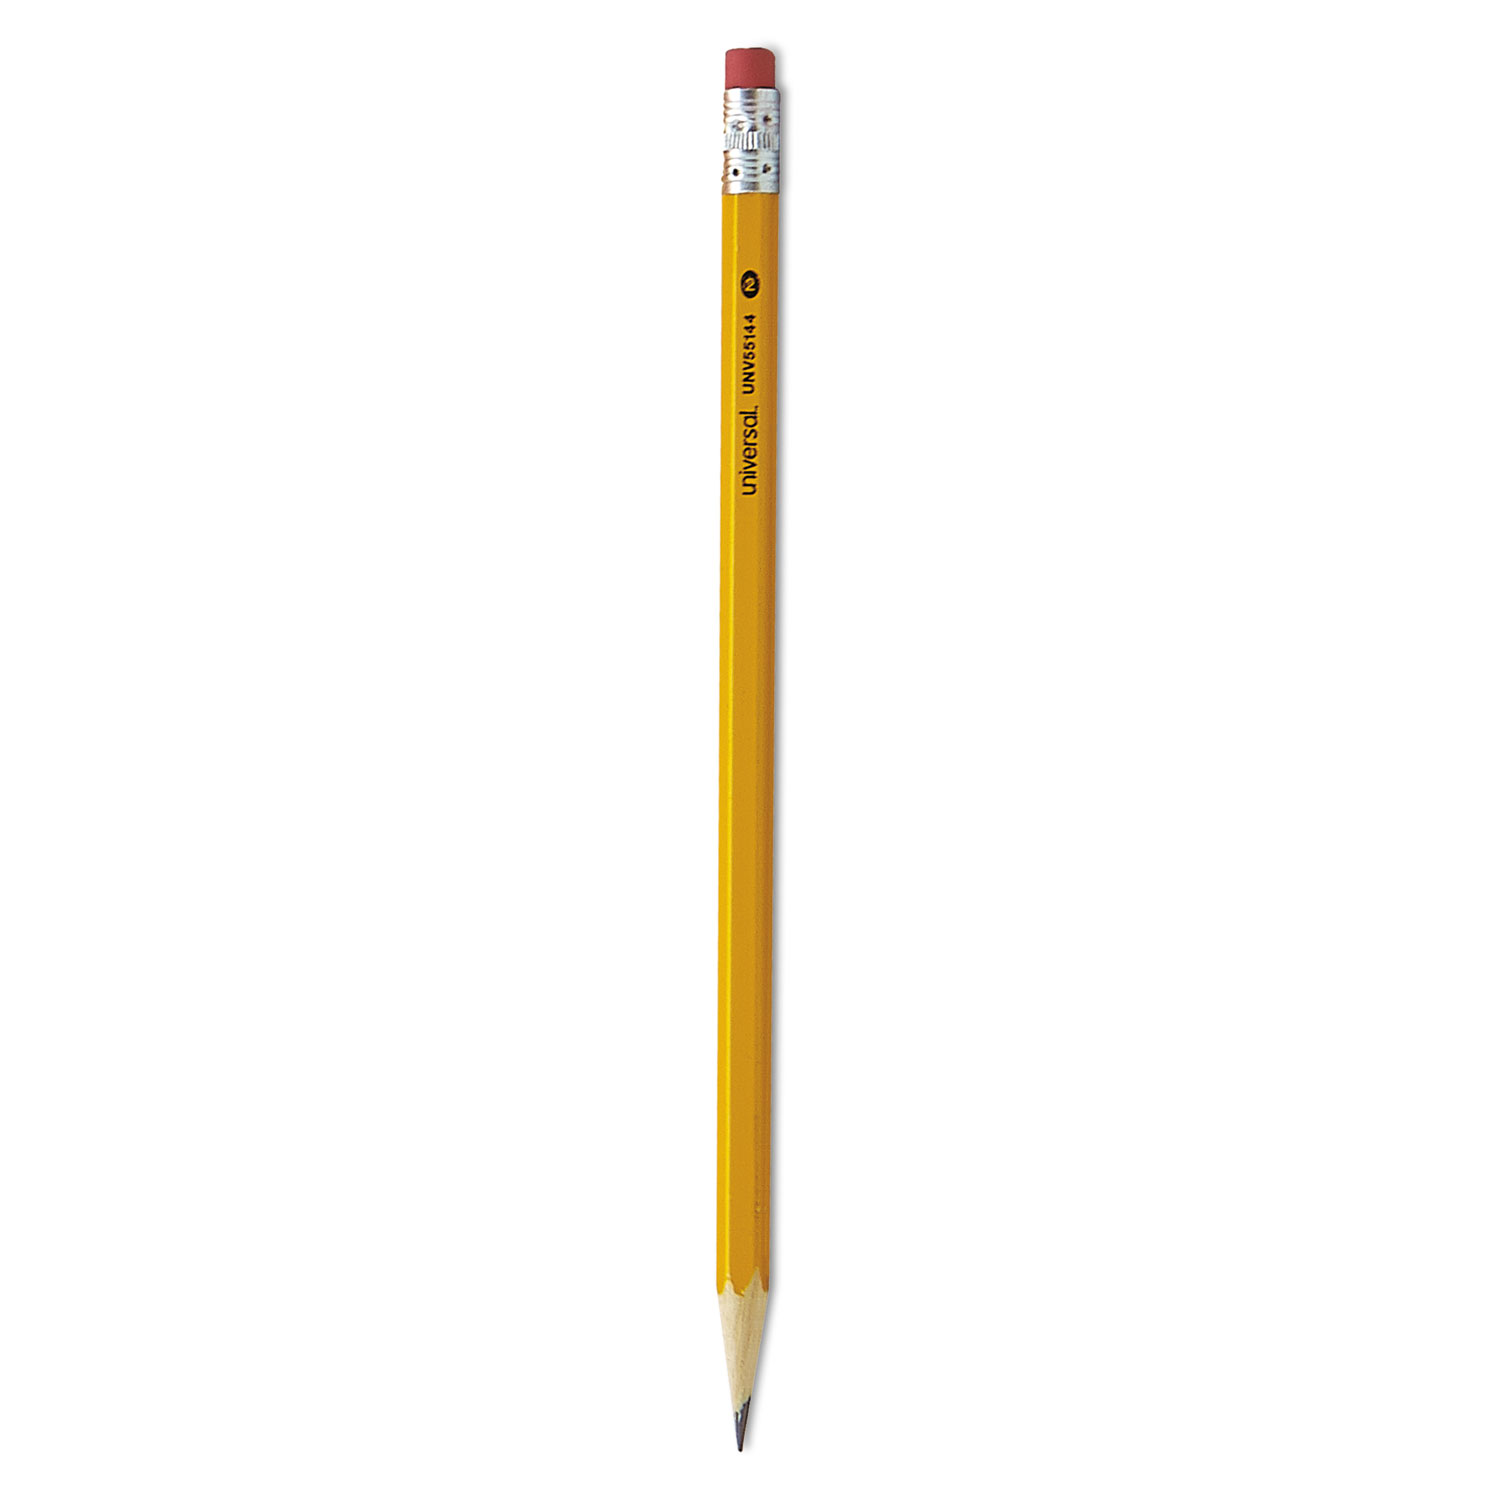 #2 Woodcase Pencil, HB (#2), Black Lead, Yellow Barrel, 144/Box